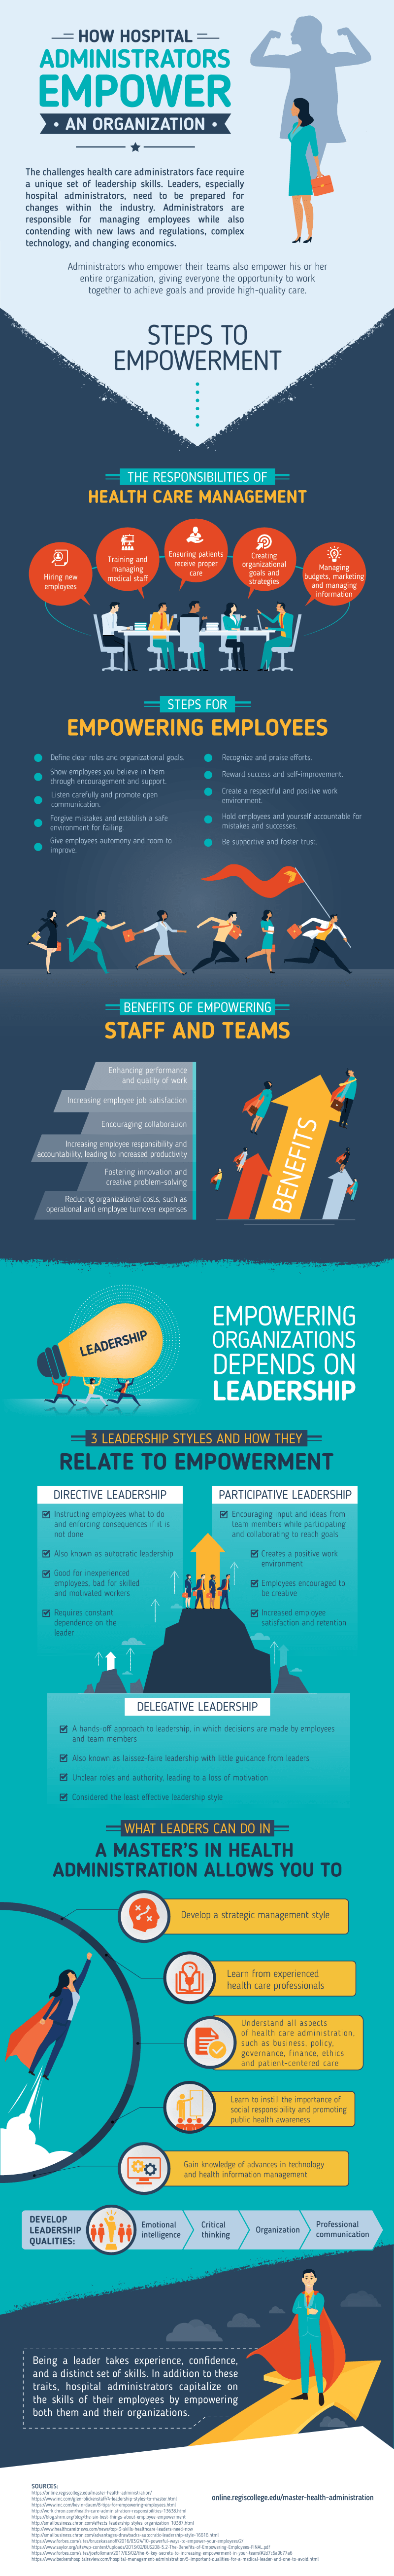 How To Empower Your Organization Empowering Leaders